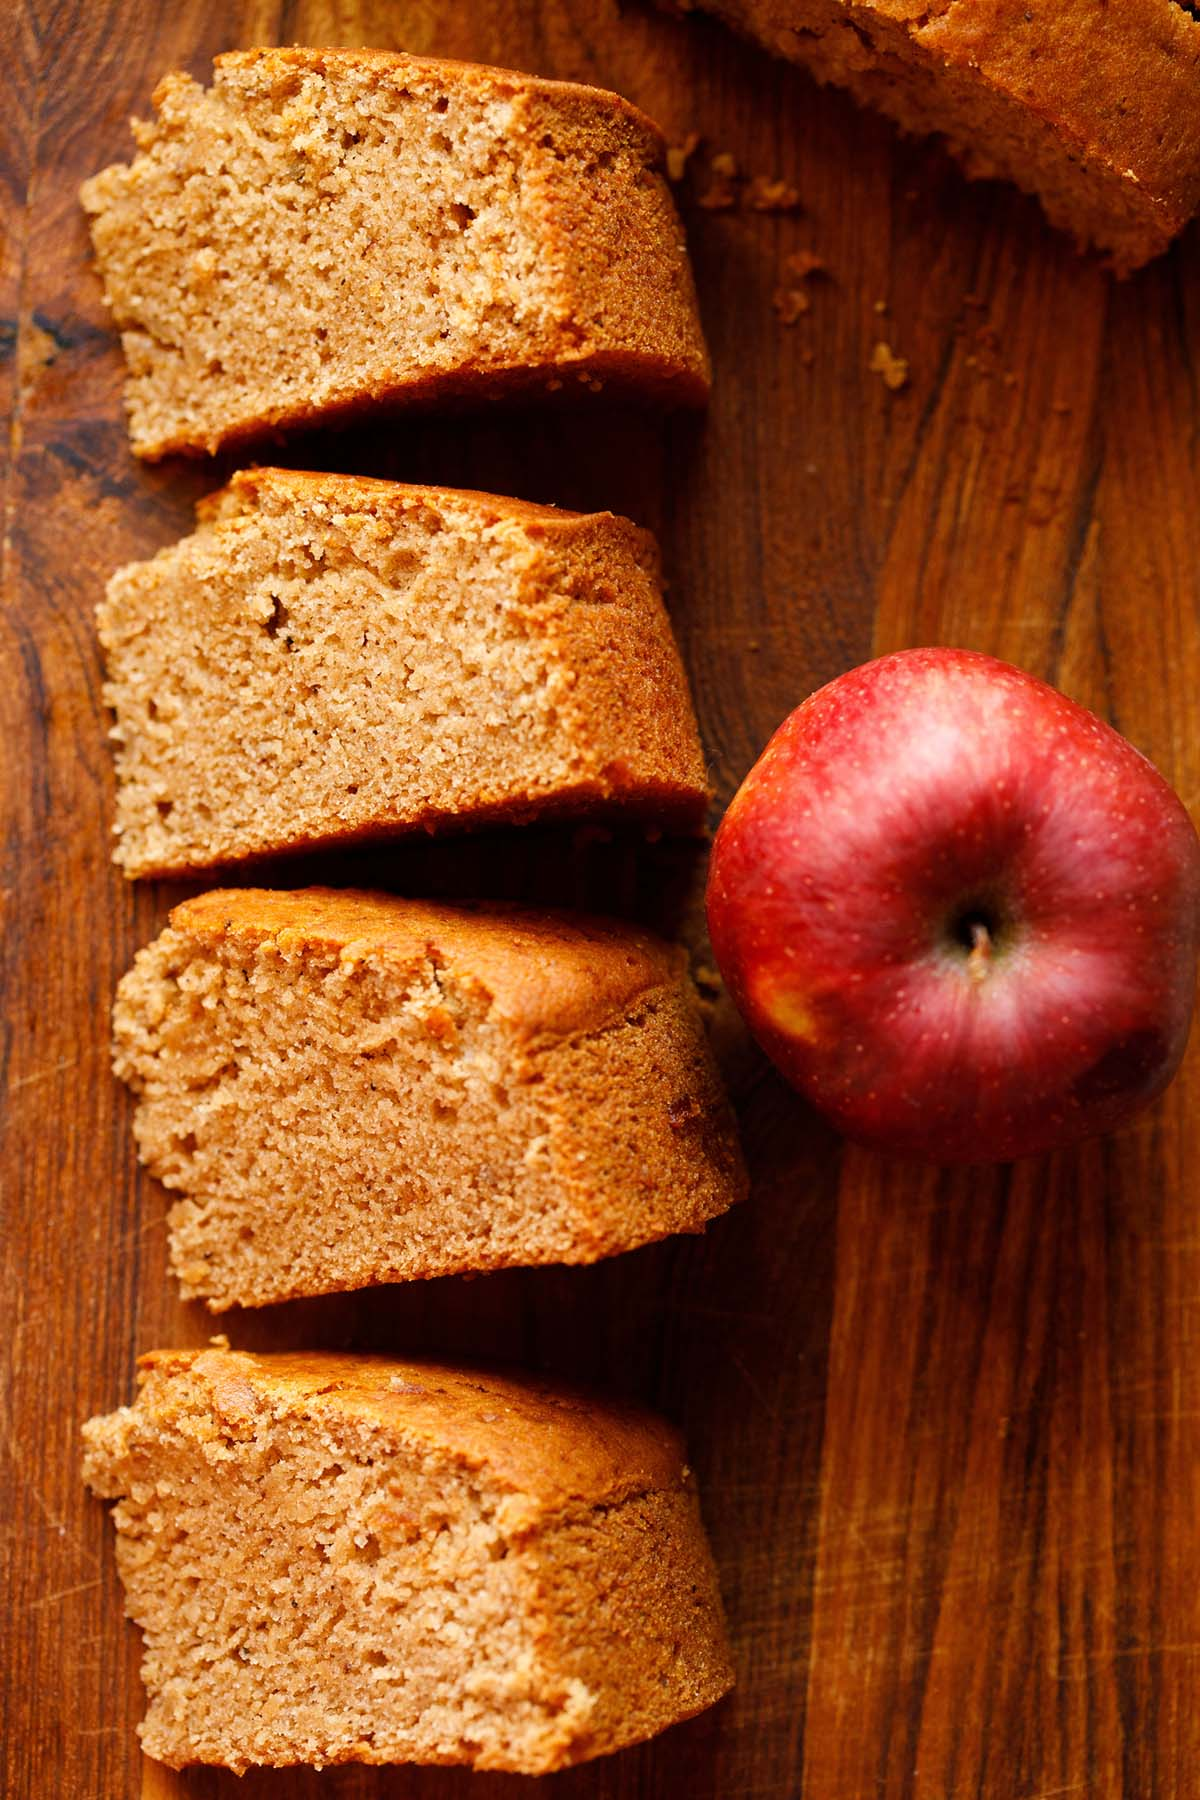 three slices of eggless apple cake on wooden table next to red apple